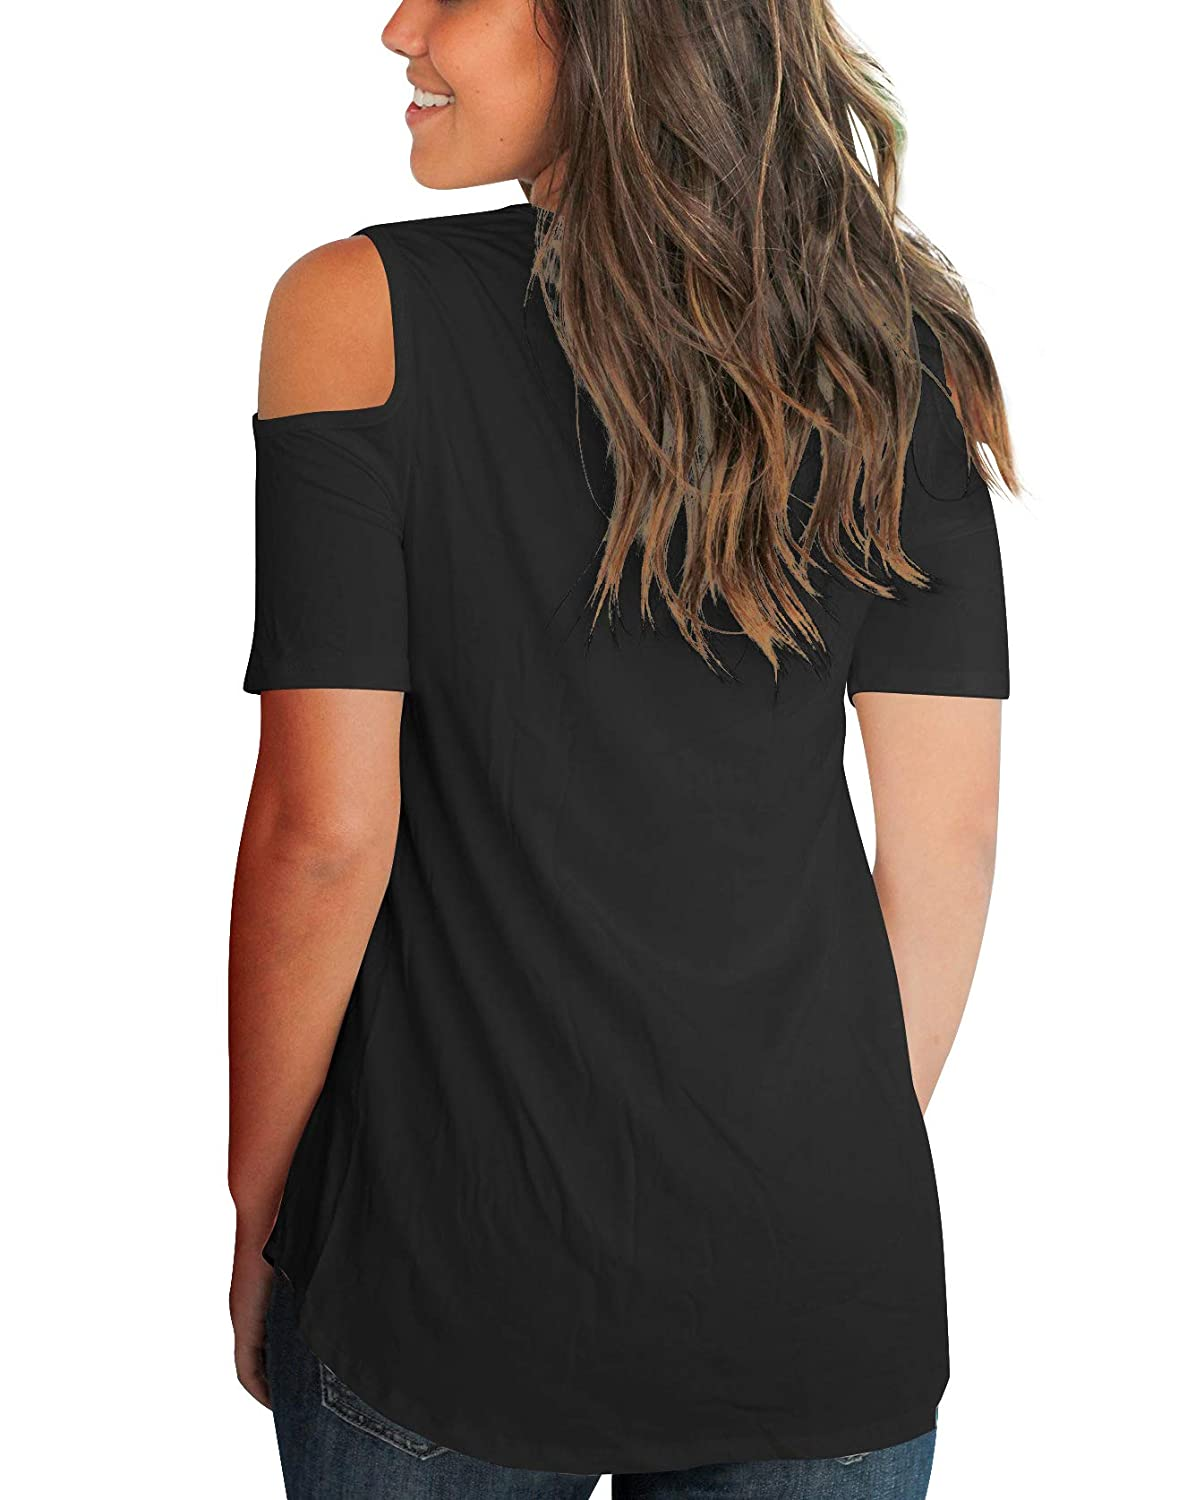 eed473faa65 Aolakeke Cold Shoulder Short Long Sleeve T Shirts V Neck Tops Casual Criss  Cross Tunic Blouse at Amazon Women s Clothing store